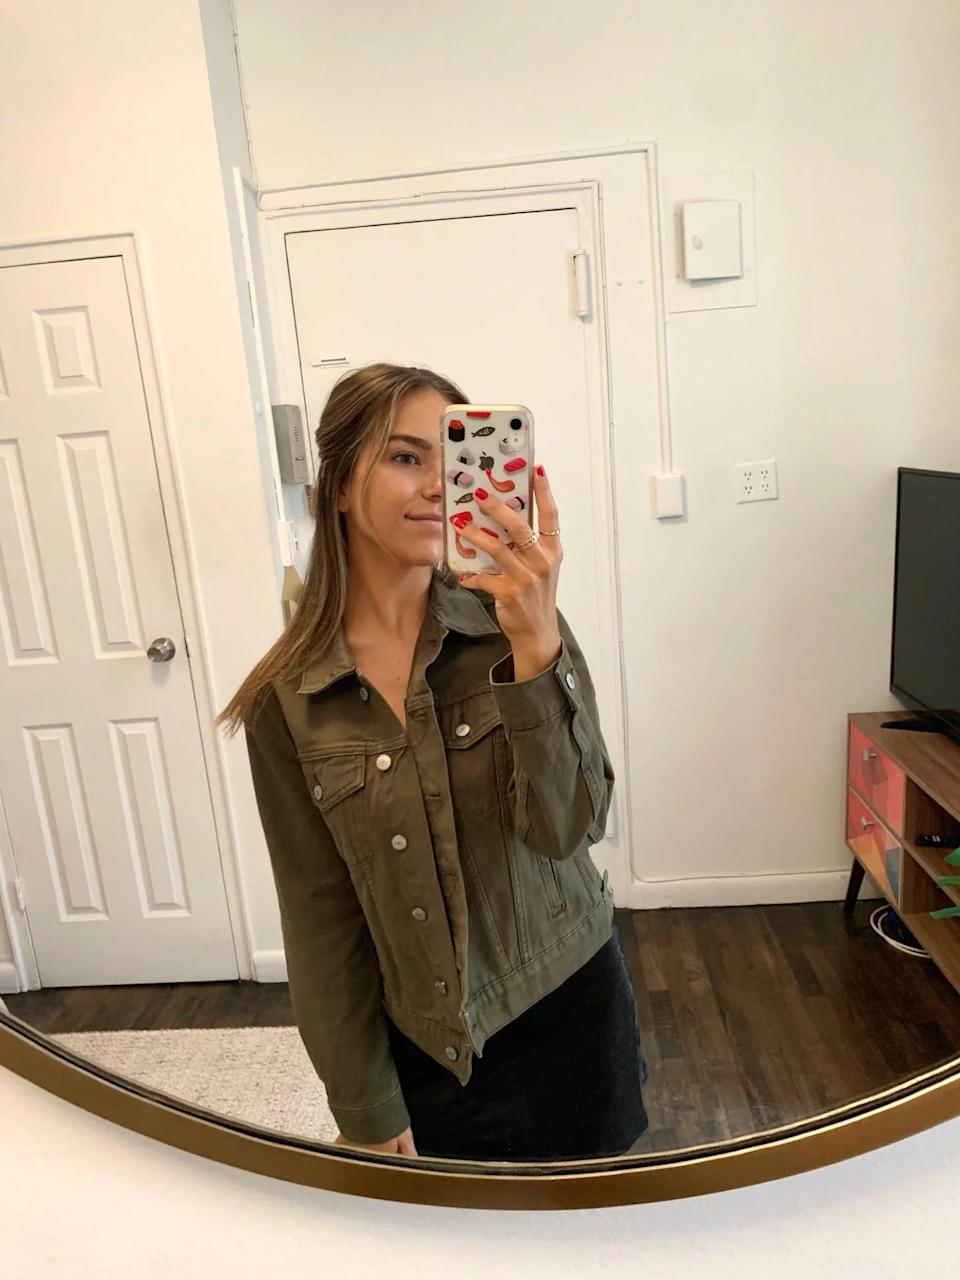 """<p><strong>The item:</strong> <span>Old Navy Olive Green Non-Stretch Jean Jacket</span> ($40) </p> <p><strong>What our editor said:</strong> """"Aside from being extremely comfortable, this jacket is also very versatile and can dress an outfit up or down depending on the look you're going for...Since it's 100 percent cotton, it's lightweight and soft to touch, but it's also thick enough to keep you warm if you want to pair it with a dress on a fall evening. Whether you're looking for a seasonal staple or you, too, want to give jean jackets another chance, this affordable option is it."""" - LH</p> <p>If you want to read more, here is the<a href=""""https://www.popsugar.com/fashion/old-navy-olive-green-jean-jacket-review-48476711"""" class=""""link rapid-noclick-resp"""" rel=""""nofollow noopener"""" target=""""_blank"""" data-ylk=""""slk:complete review""""> complete review</a>.</p>"""